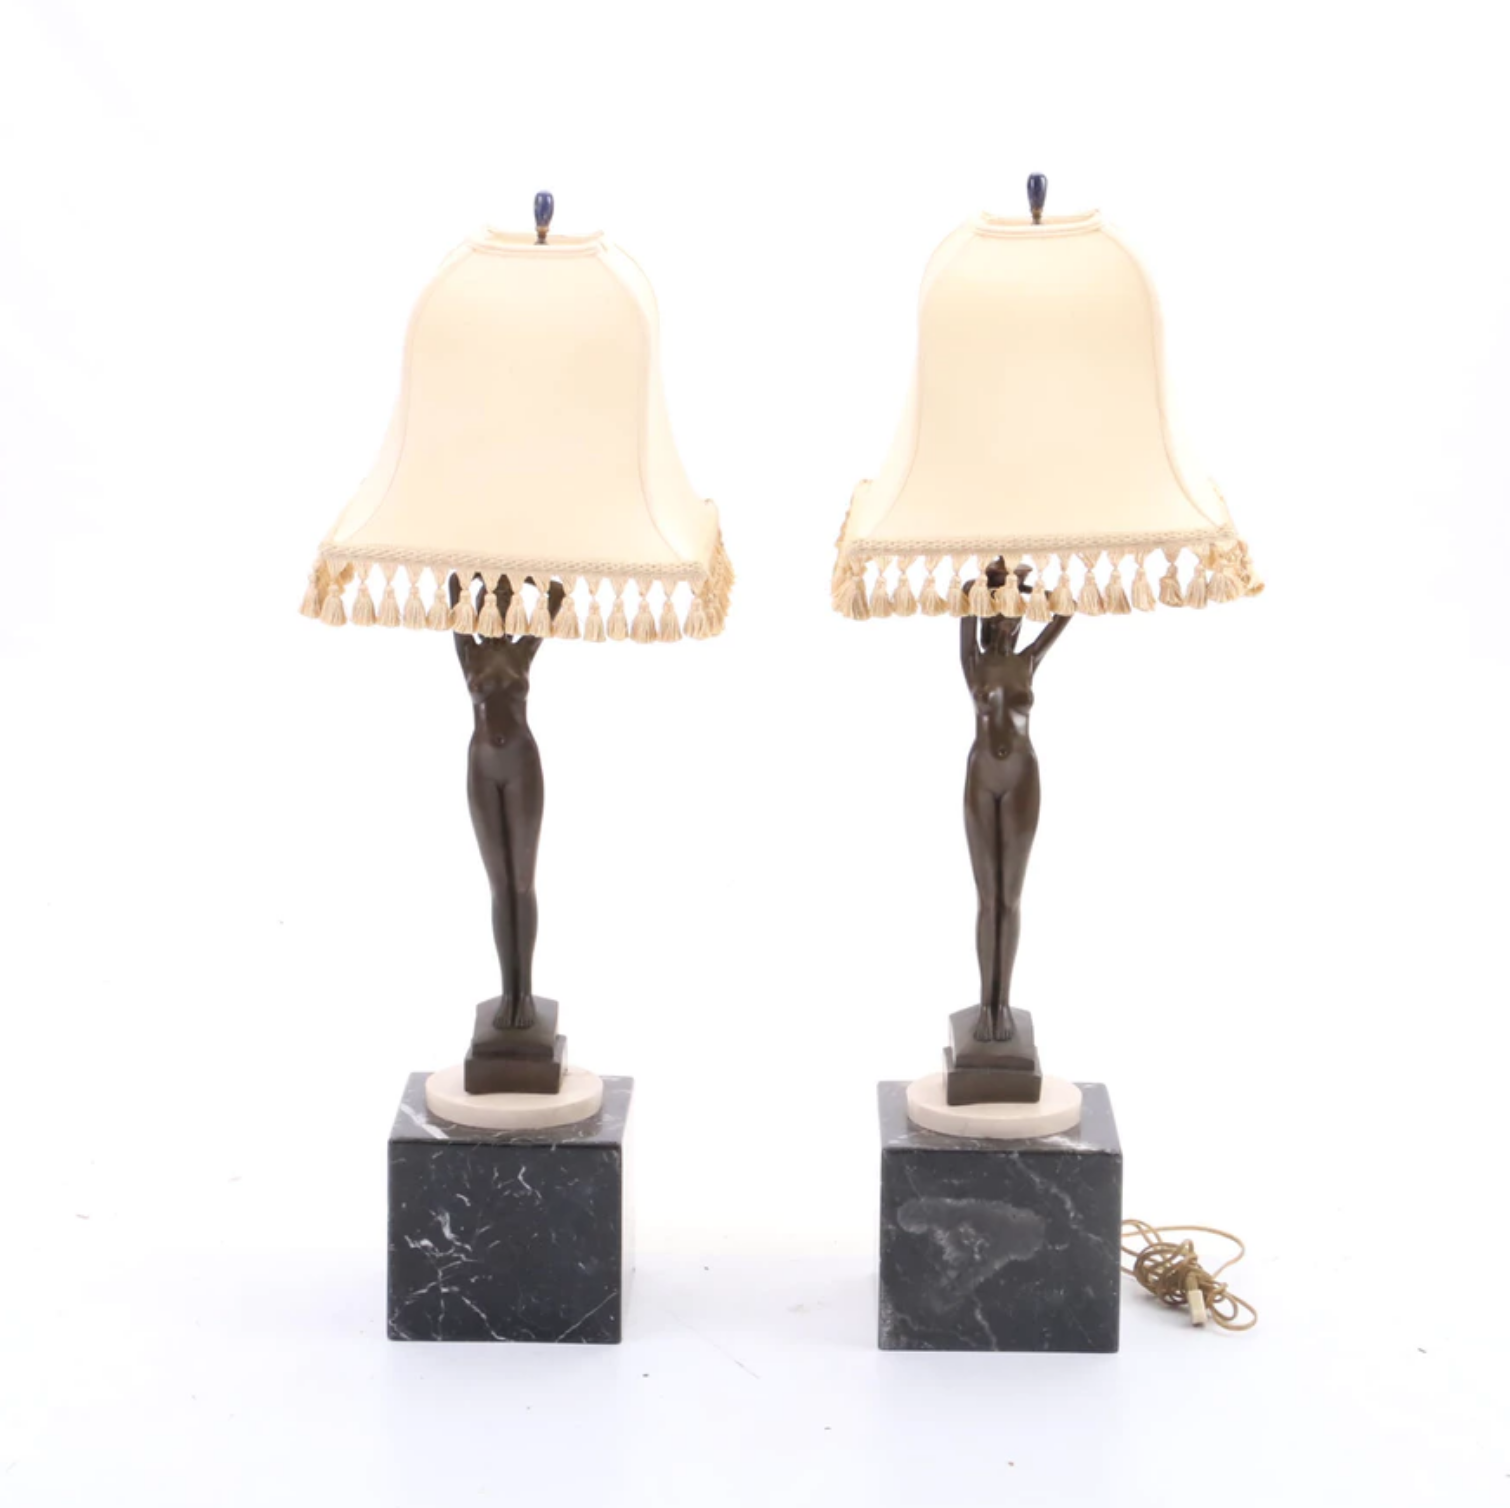 Vintage Reproduction Nude Figural Lamps from $45